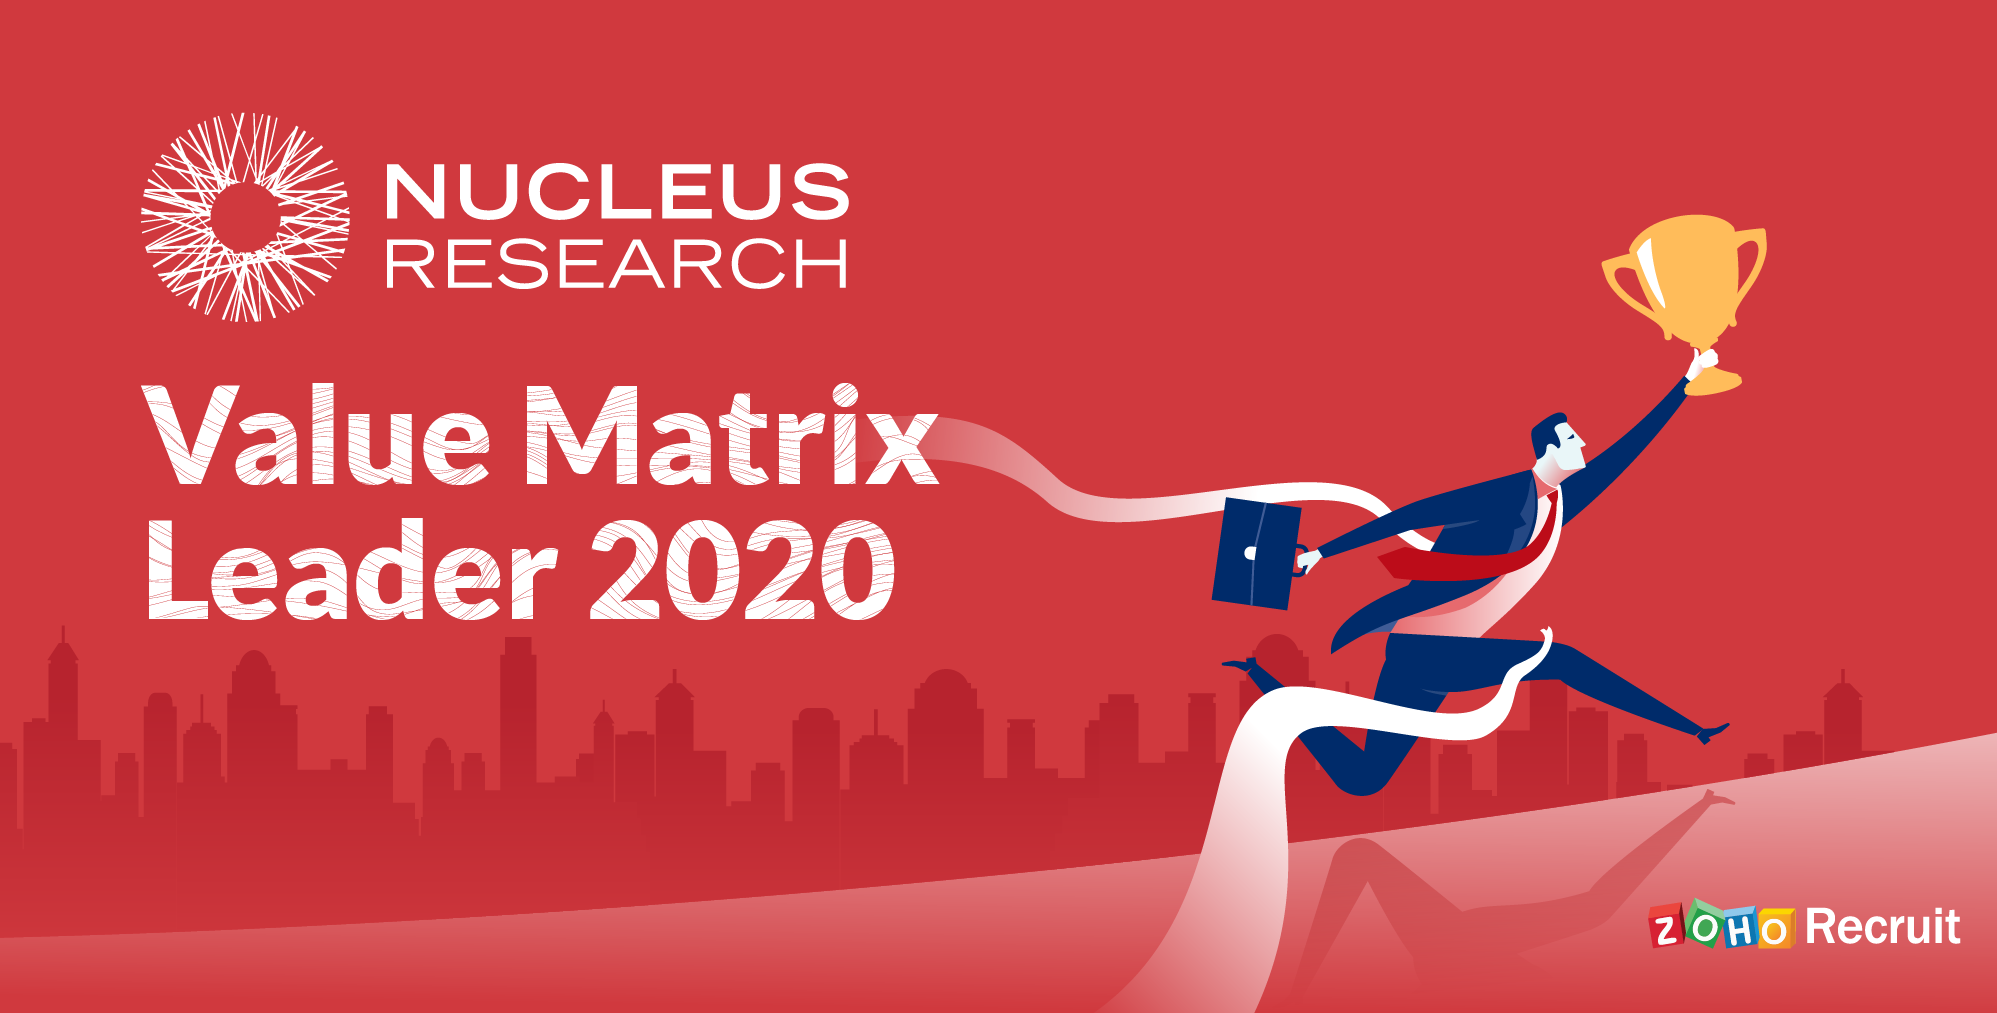 Zoho Recruit named 'Leader' in Nucleus Research's Talent Acquisition Technology Value Matrix, 2020